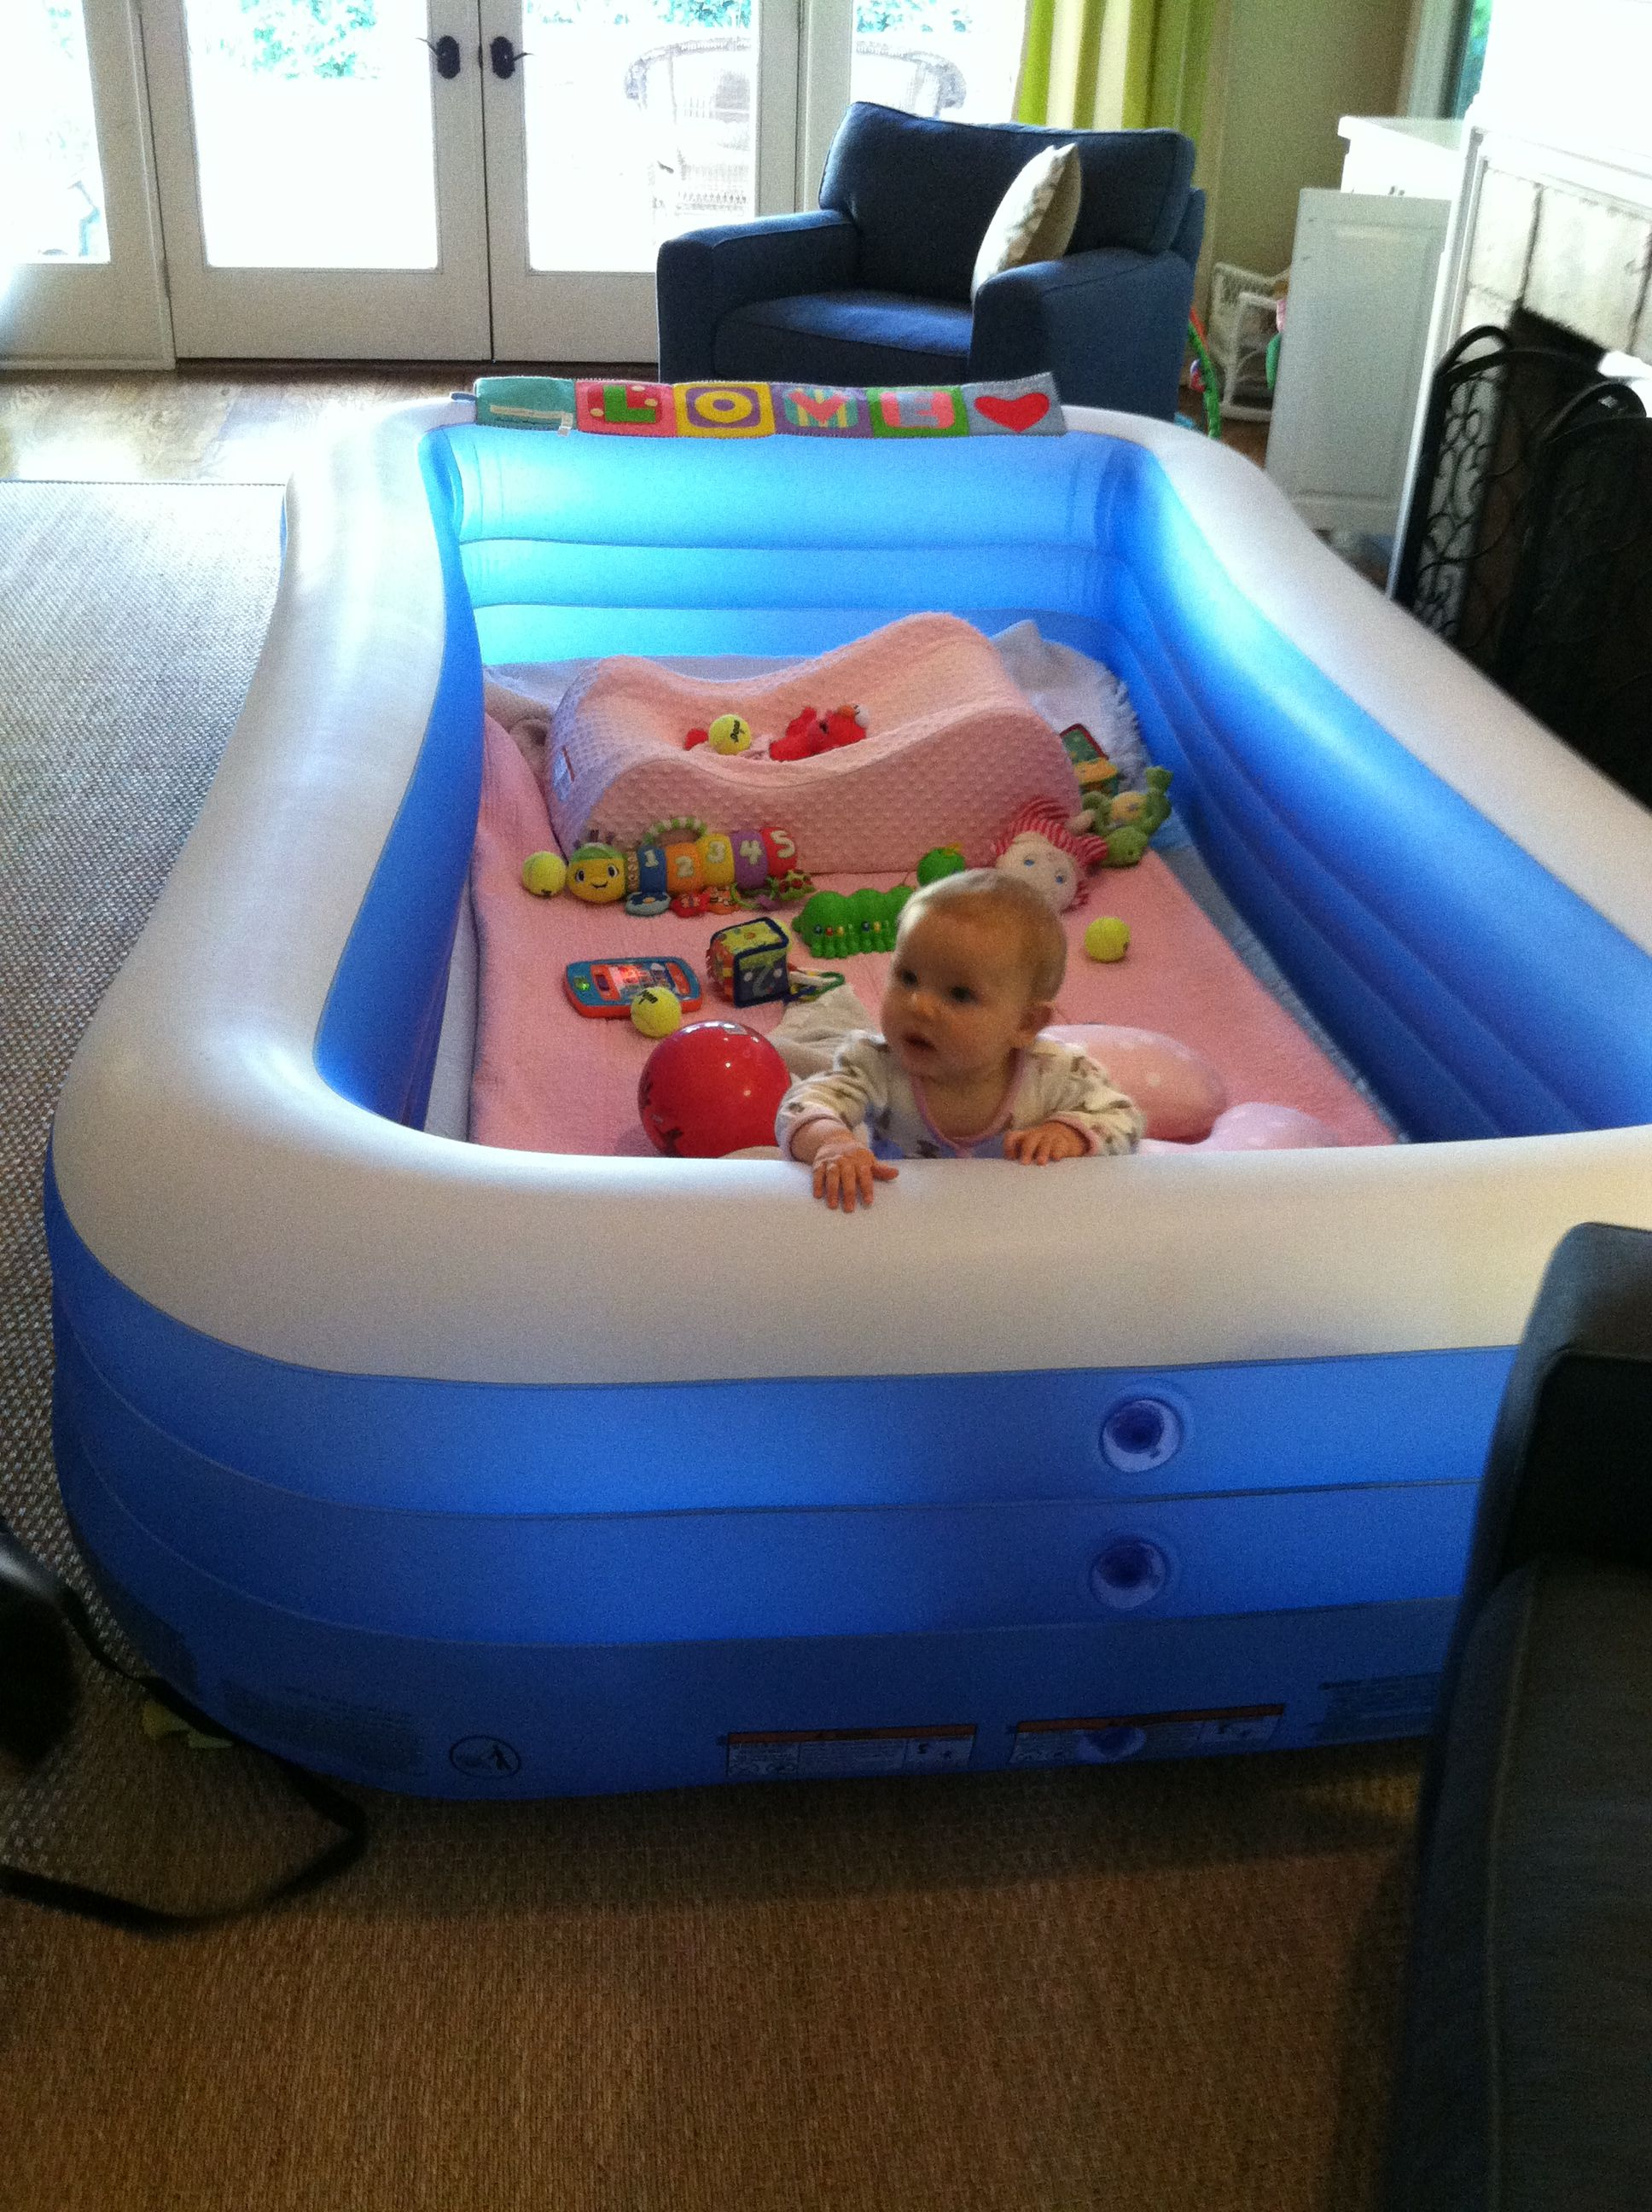 Use An Inflatable Pool As A Playpen For Your Toddler